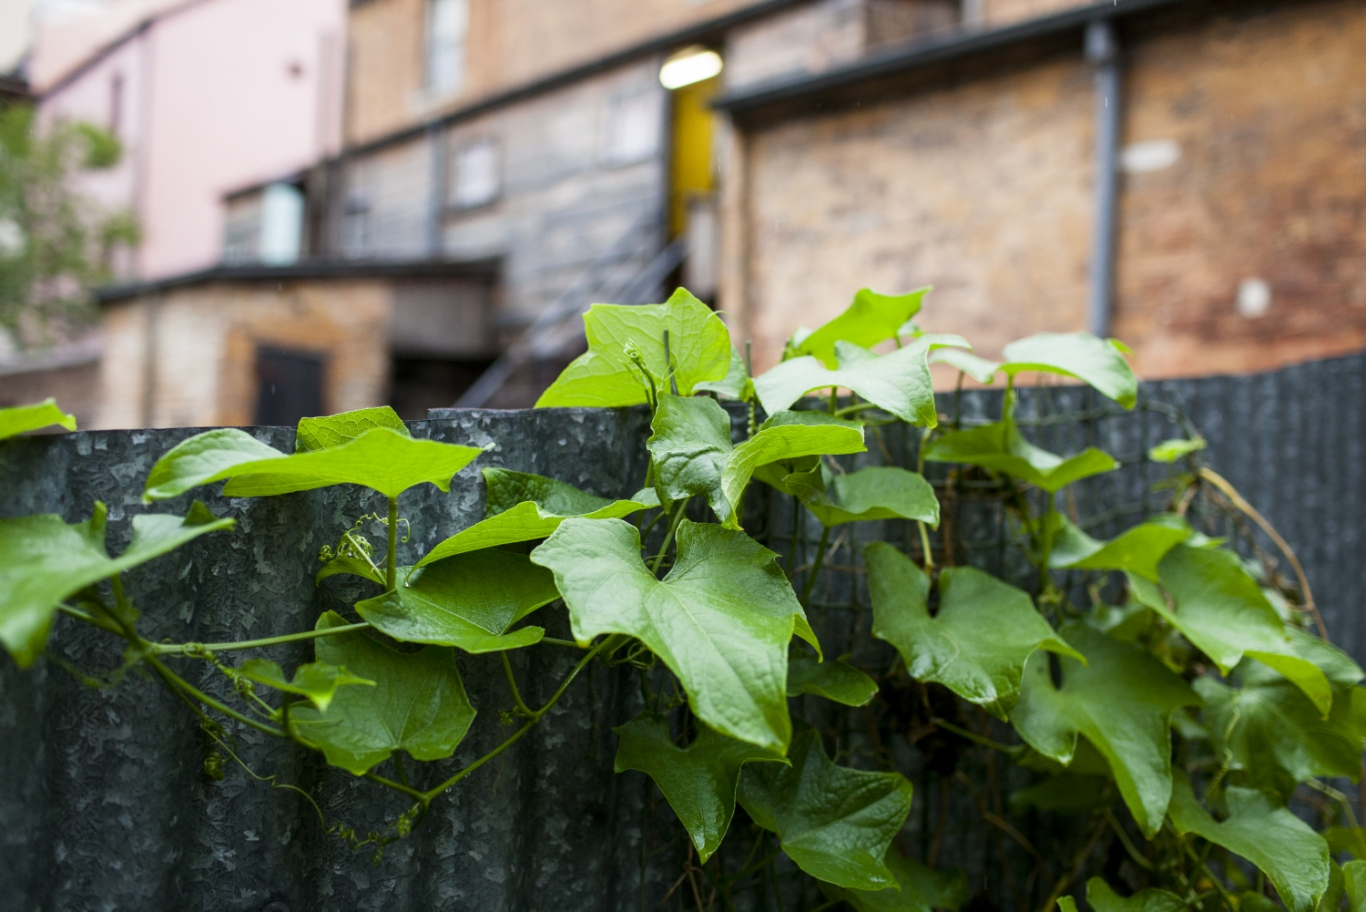 Detail of choko vine on wooden fence, houses in background.